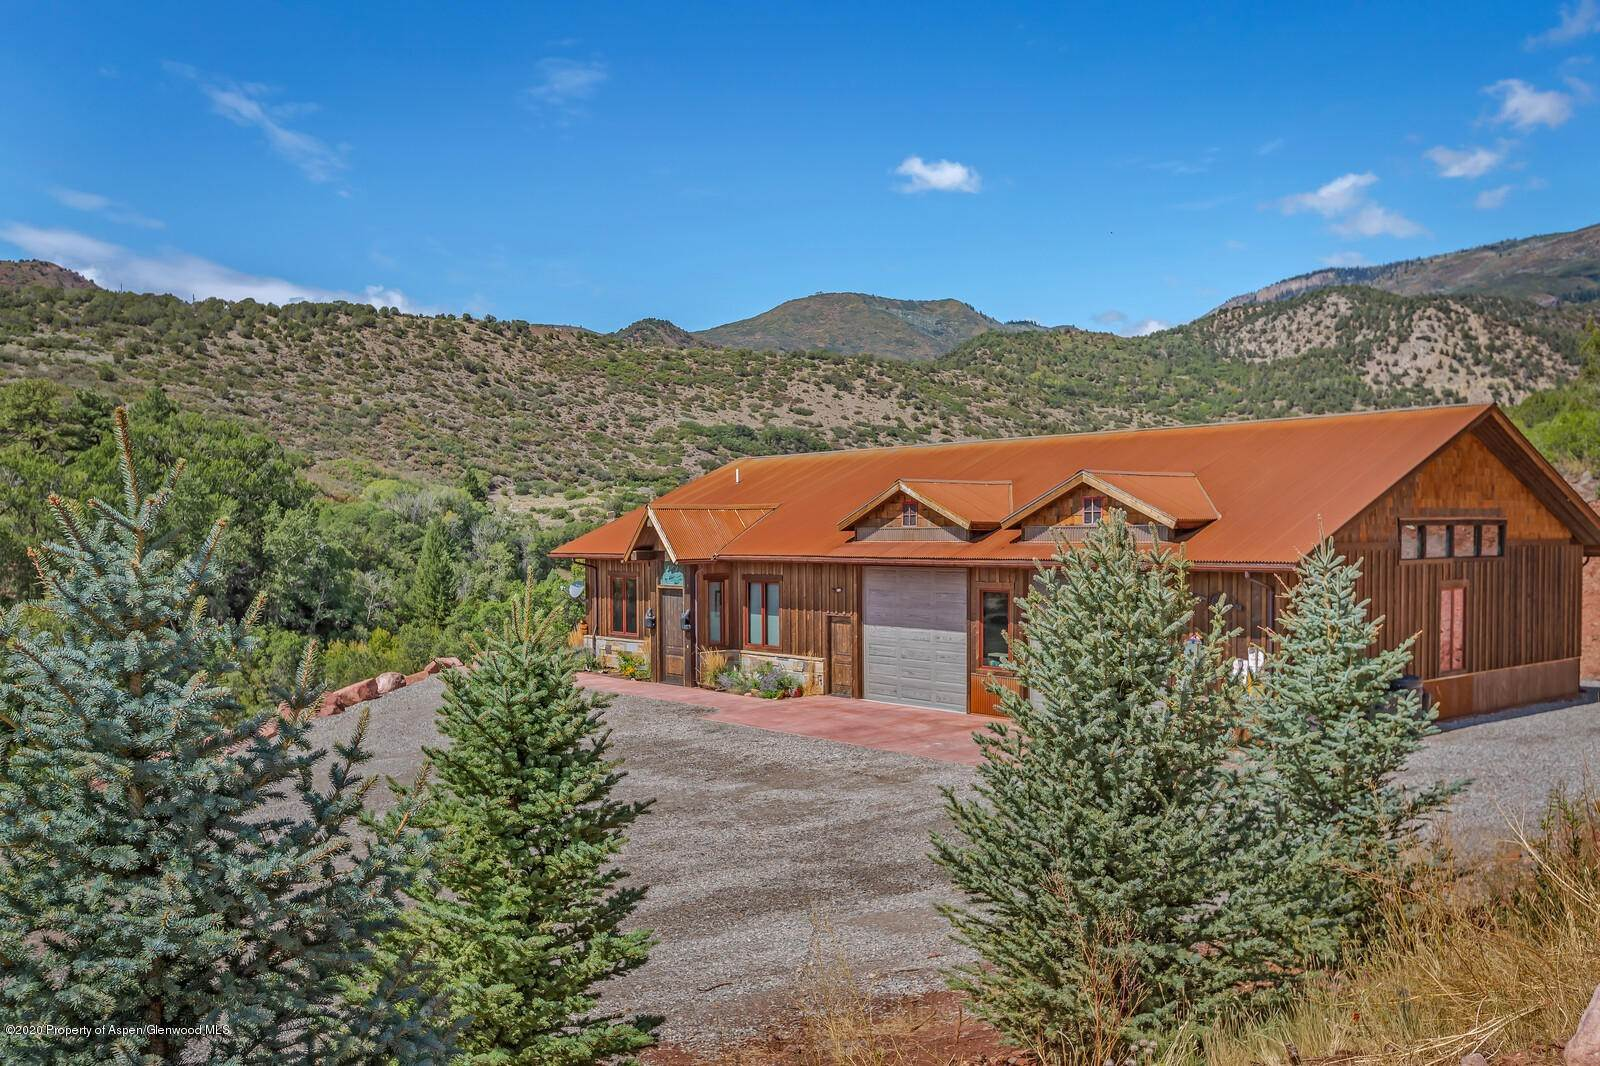 Single Family Home 為 出售 在 2123 County Road 137 Glenwood Springs, 科羅拉多州,81601 美國